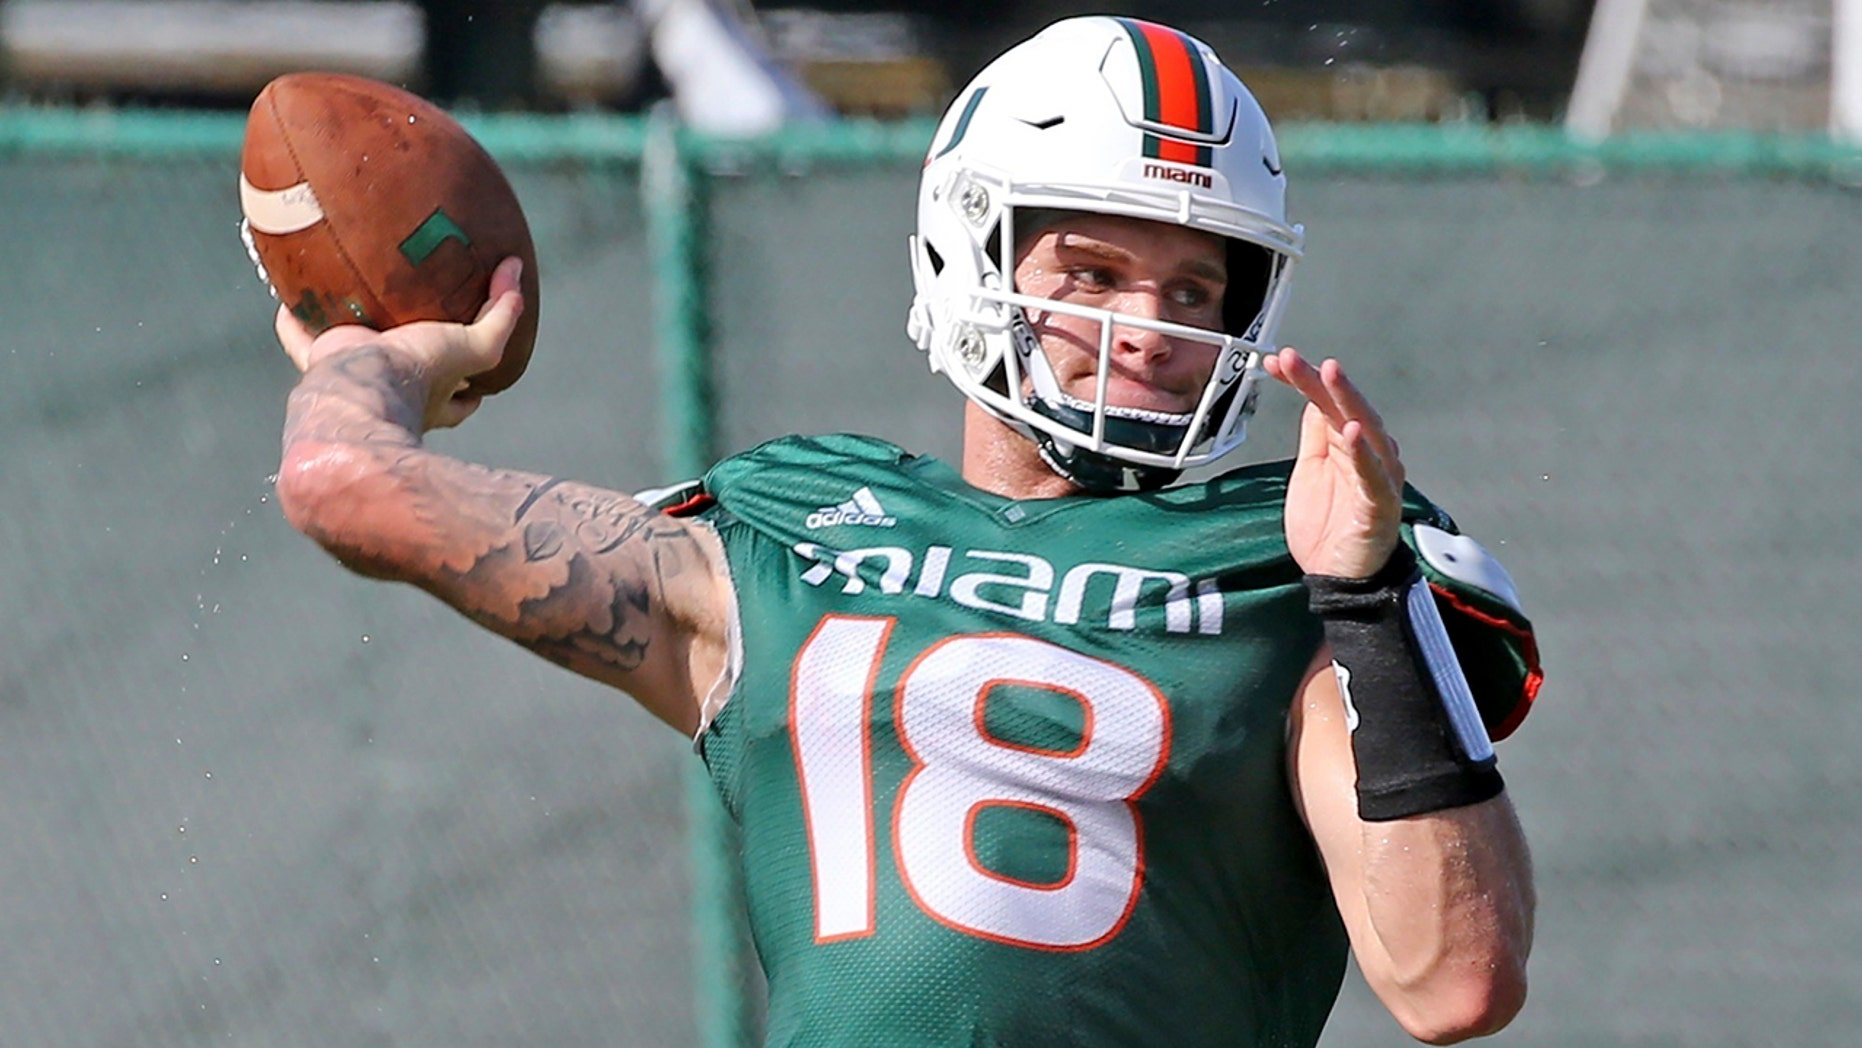 Westlake Legal Group CFB-Tate-Martell ACC experiencing highs, lows of high-profile transfers fox-news/sports/ncaa/miami-hurricanes fox-news/sports/ncaa-fb fox-news/sports/ncaa fnc/sports fnc Associated Press article 16081097-2f7c-507c-88d5-7b33f3e70394